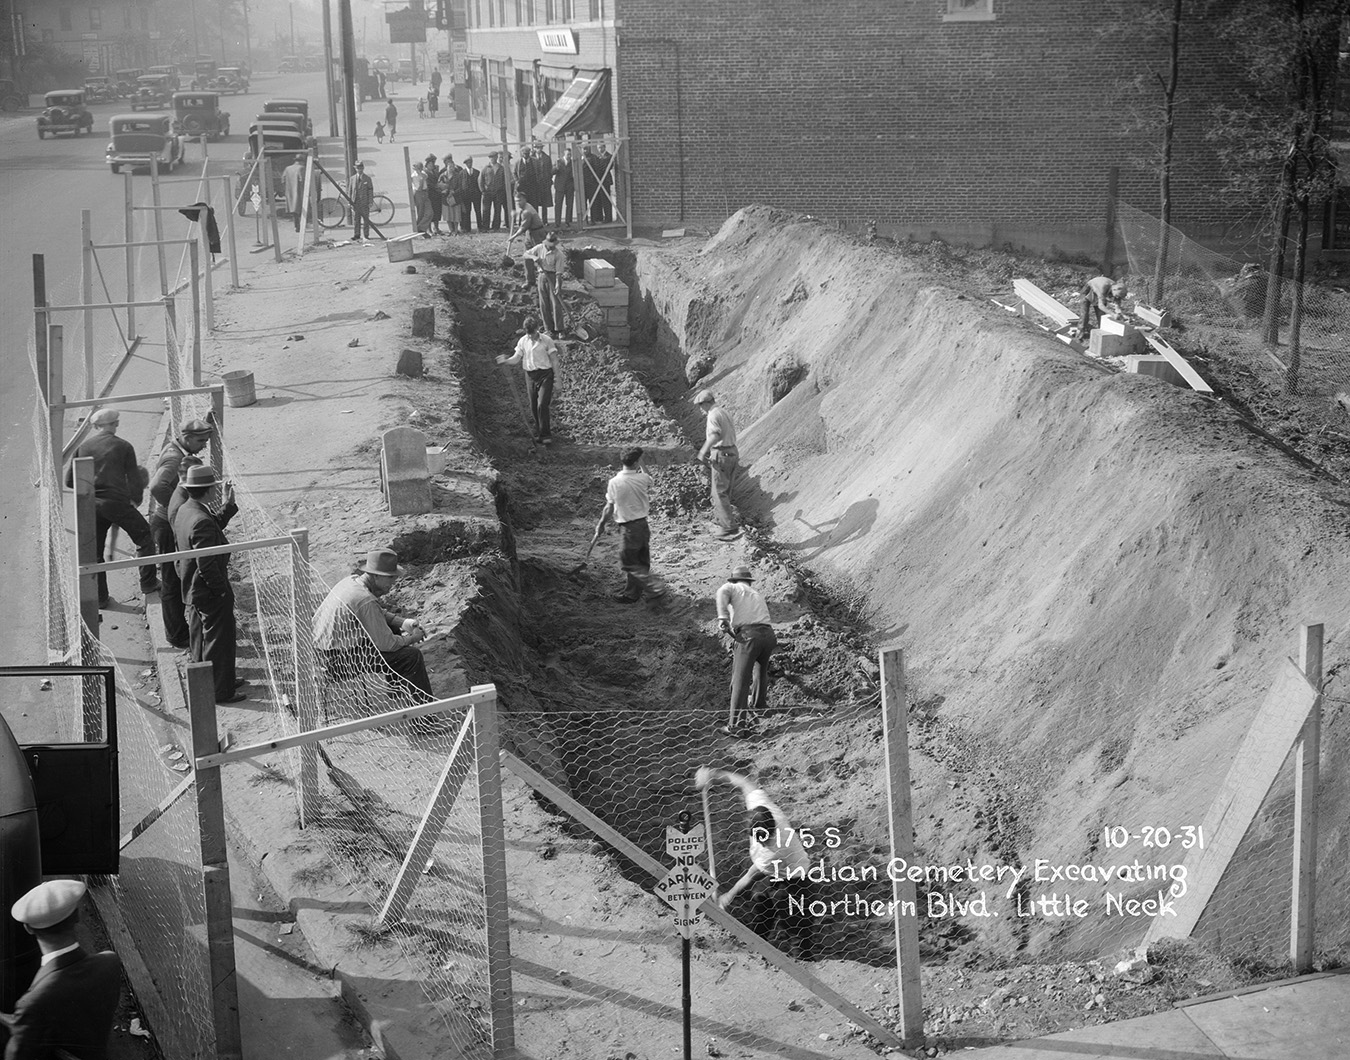 Excavating Indian Cemetery on Northern Boulevard, Little Neck, Queens, October 20, 1931. Borough President Queens Collection, NYC Municipal Archives.